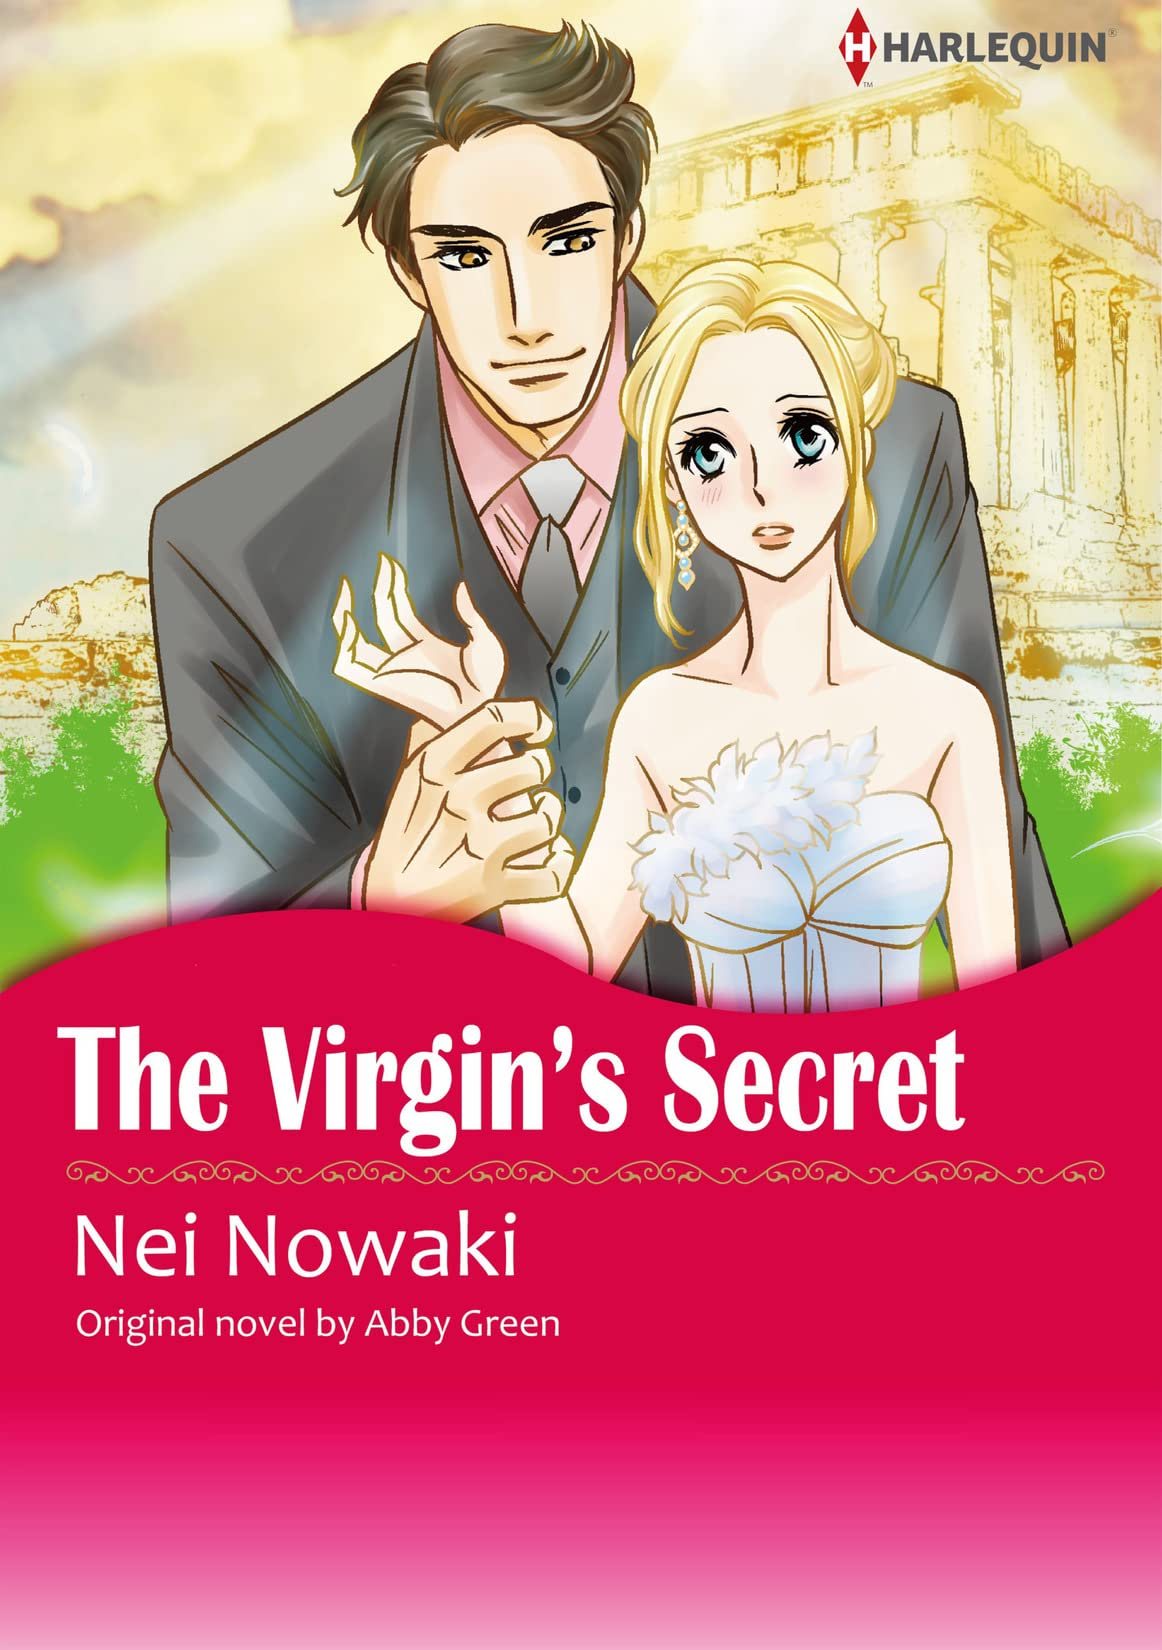 The Virgin's Secret